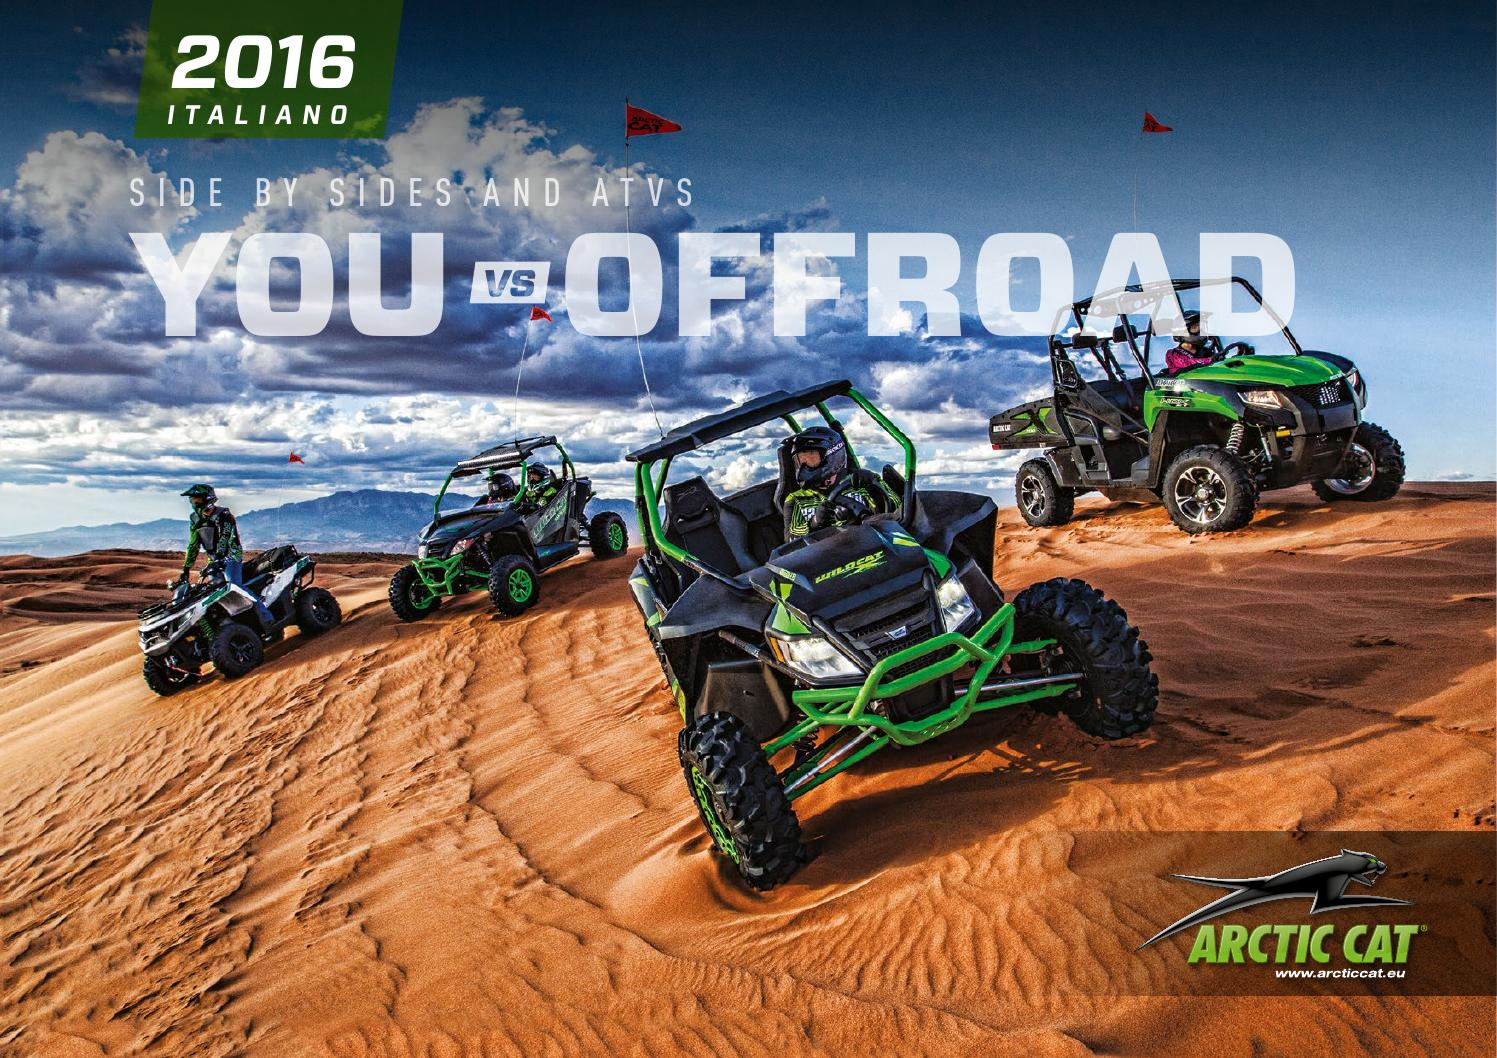 arctic cat europe atv and side by side brochure 2016 italian by textron off road issuu. Black Bedroom Furniture Sets. Home Design Ideas